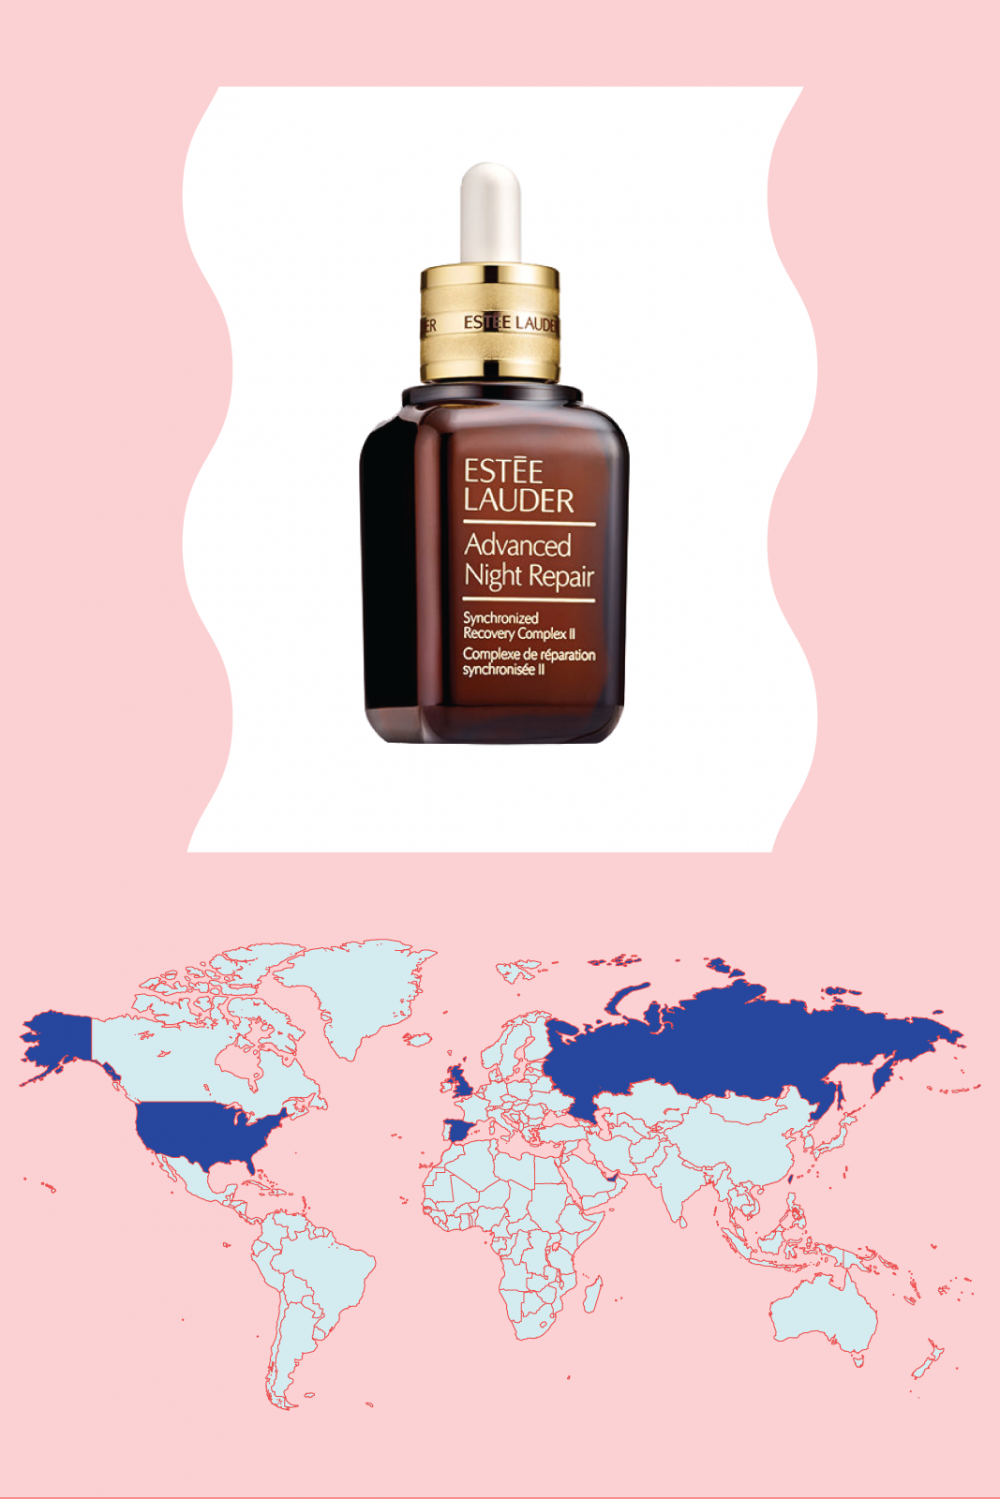 Popular Skin Care Brands Top Beauty Brands By Country Top Skin Care Products Beauty Buys Top Skin Care Brands